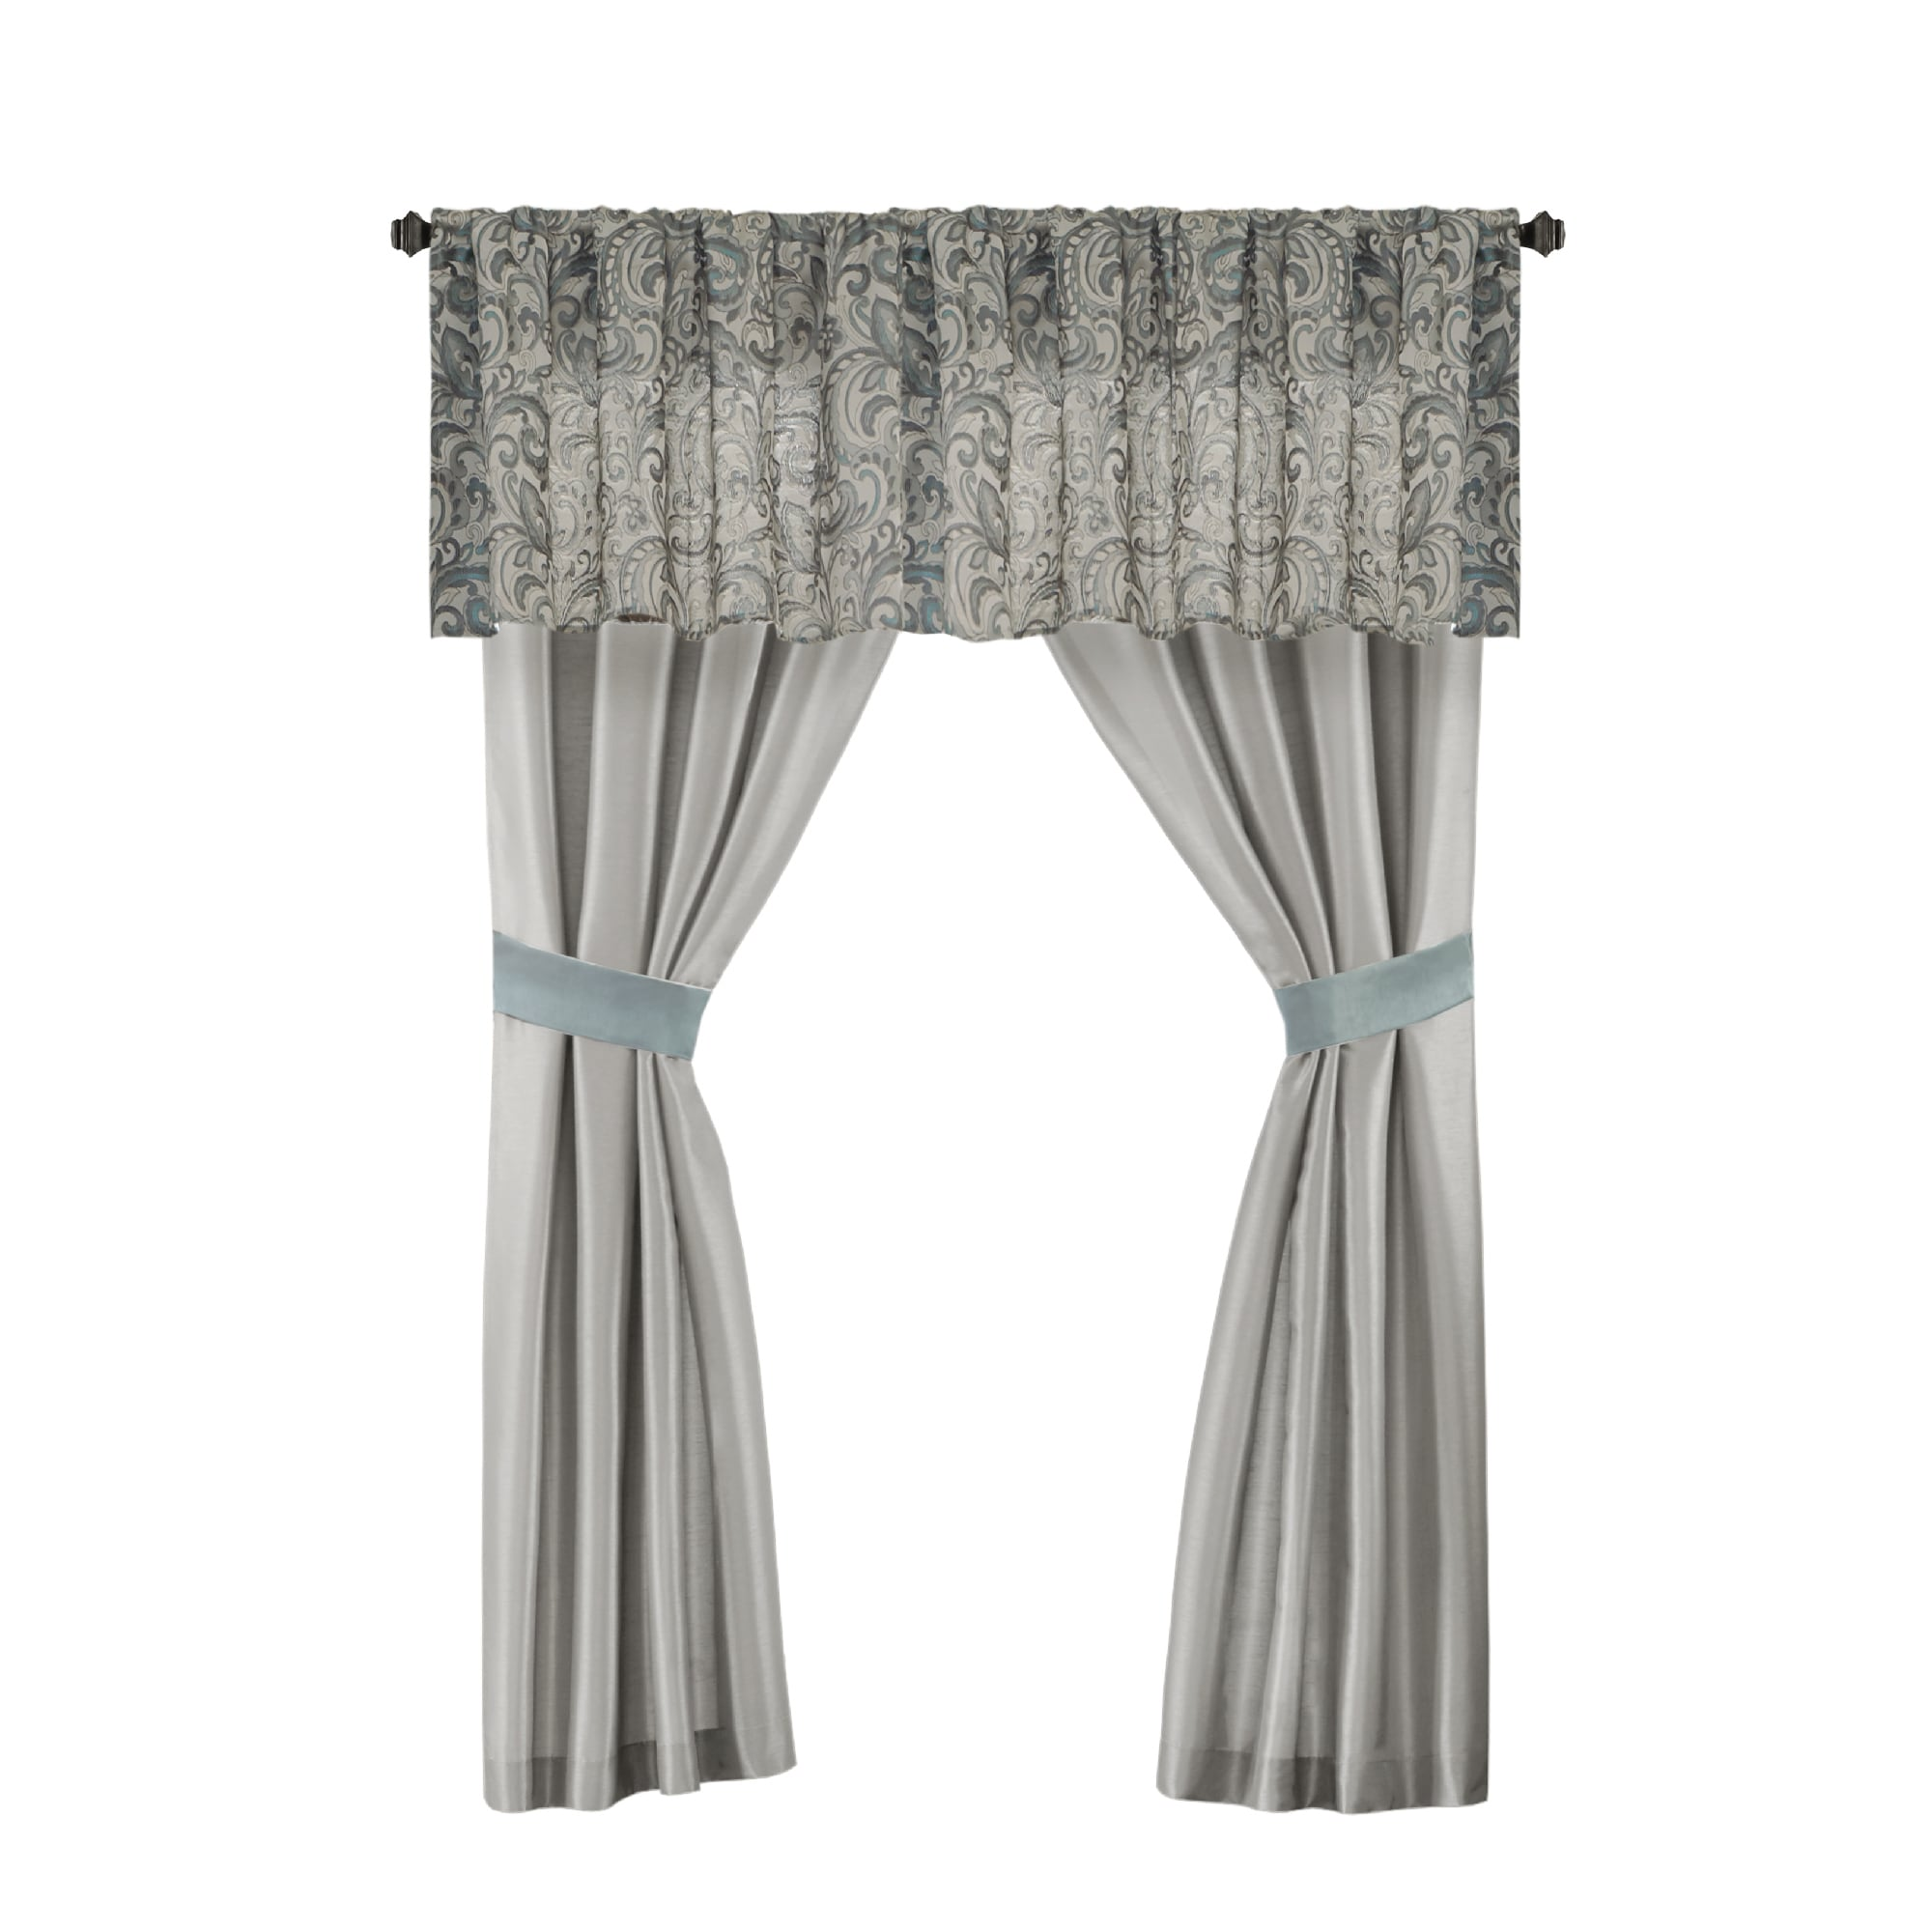 be15a7f6ad4 Shop Madison Park Essentials Cadence Teal Jacquard Paisley 24 Pieces Room  in a Bag - Sheet Set   Window Curtain Inlcuded - Ships To Canada -  Overstock - ...